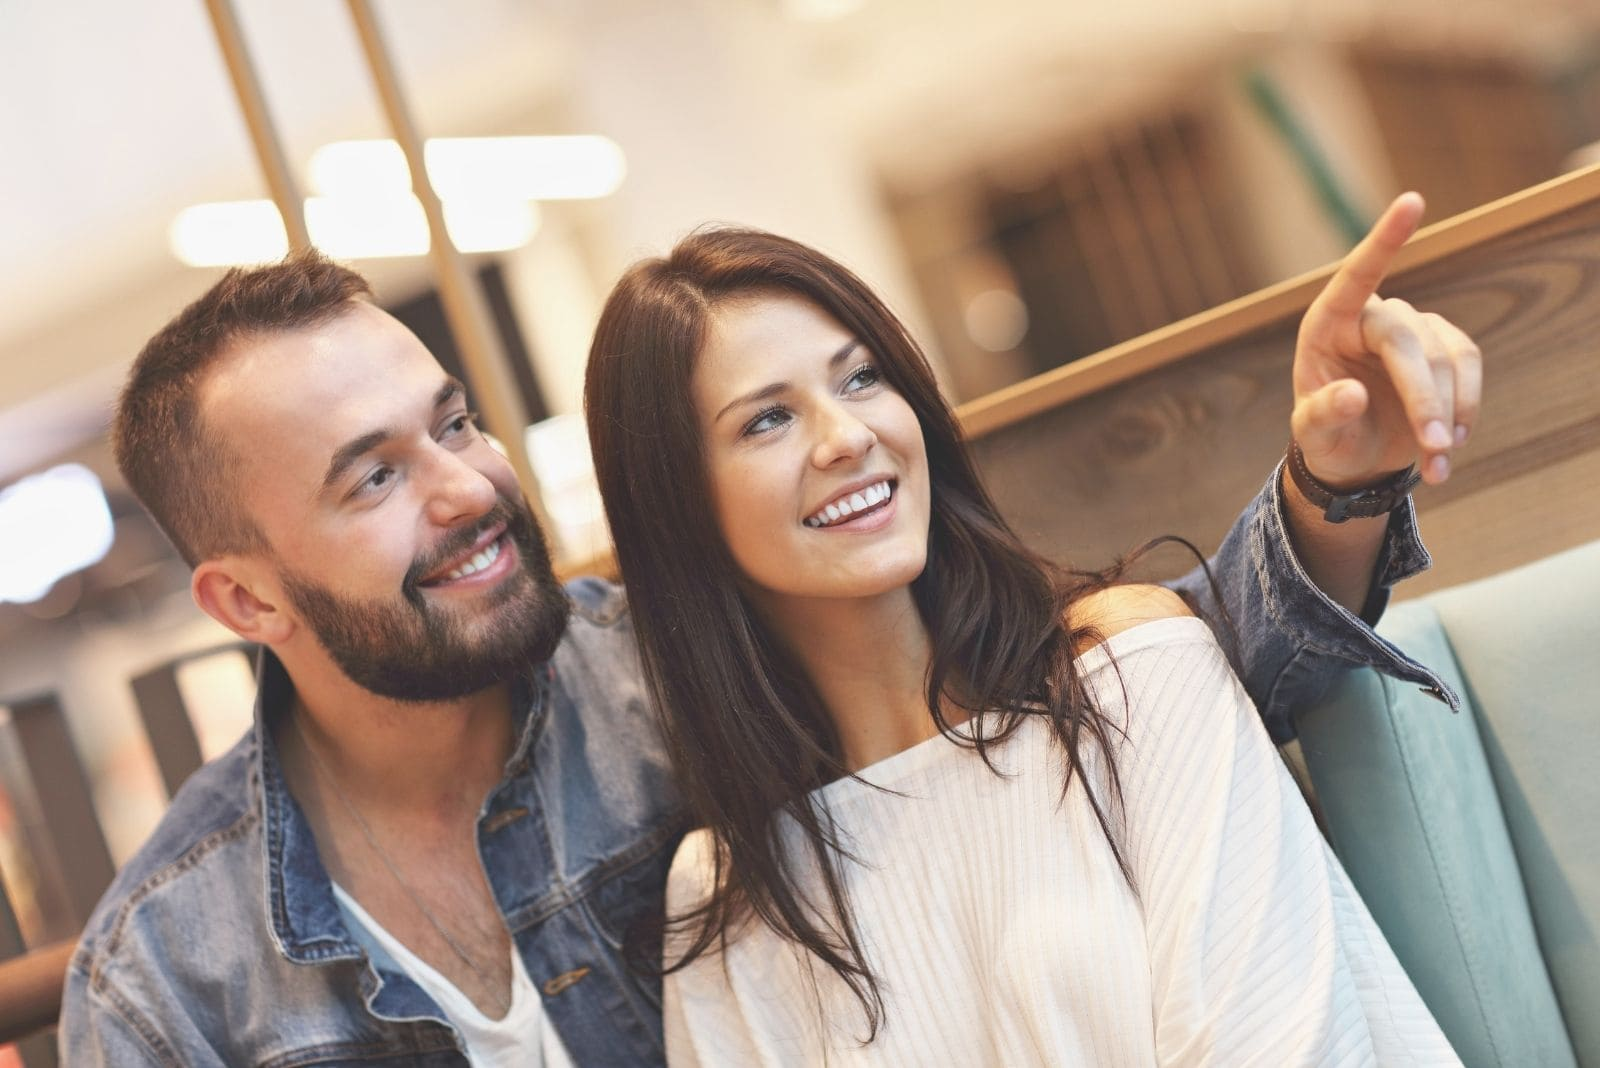 man pointing to something while dating with his girlfriend in and indoor cafe